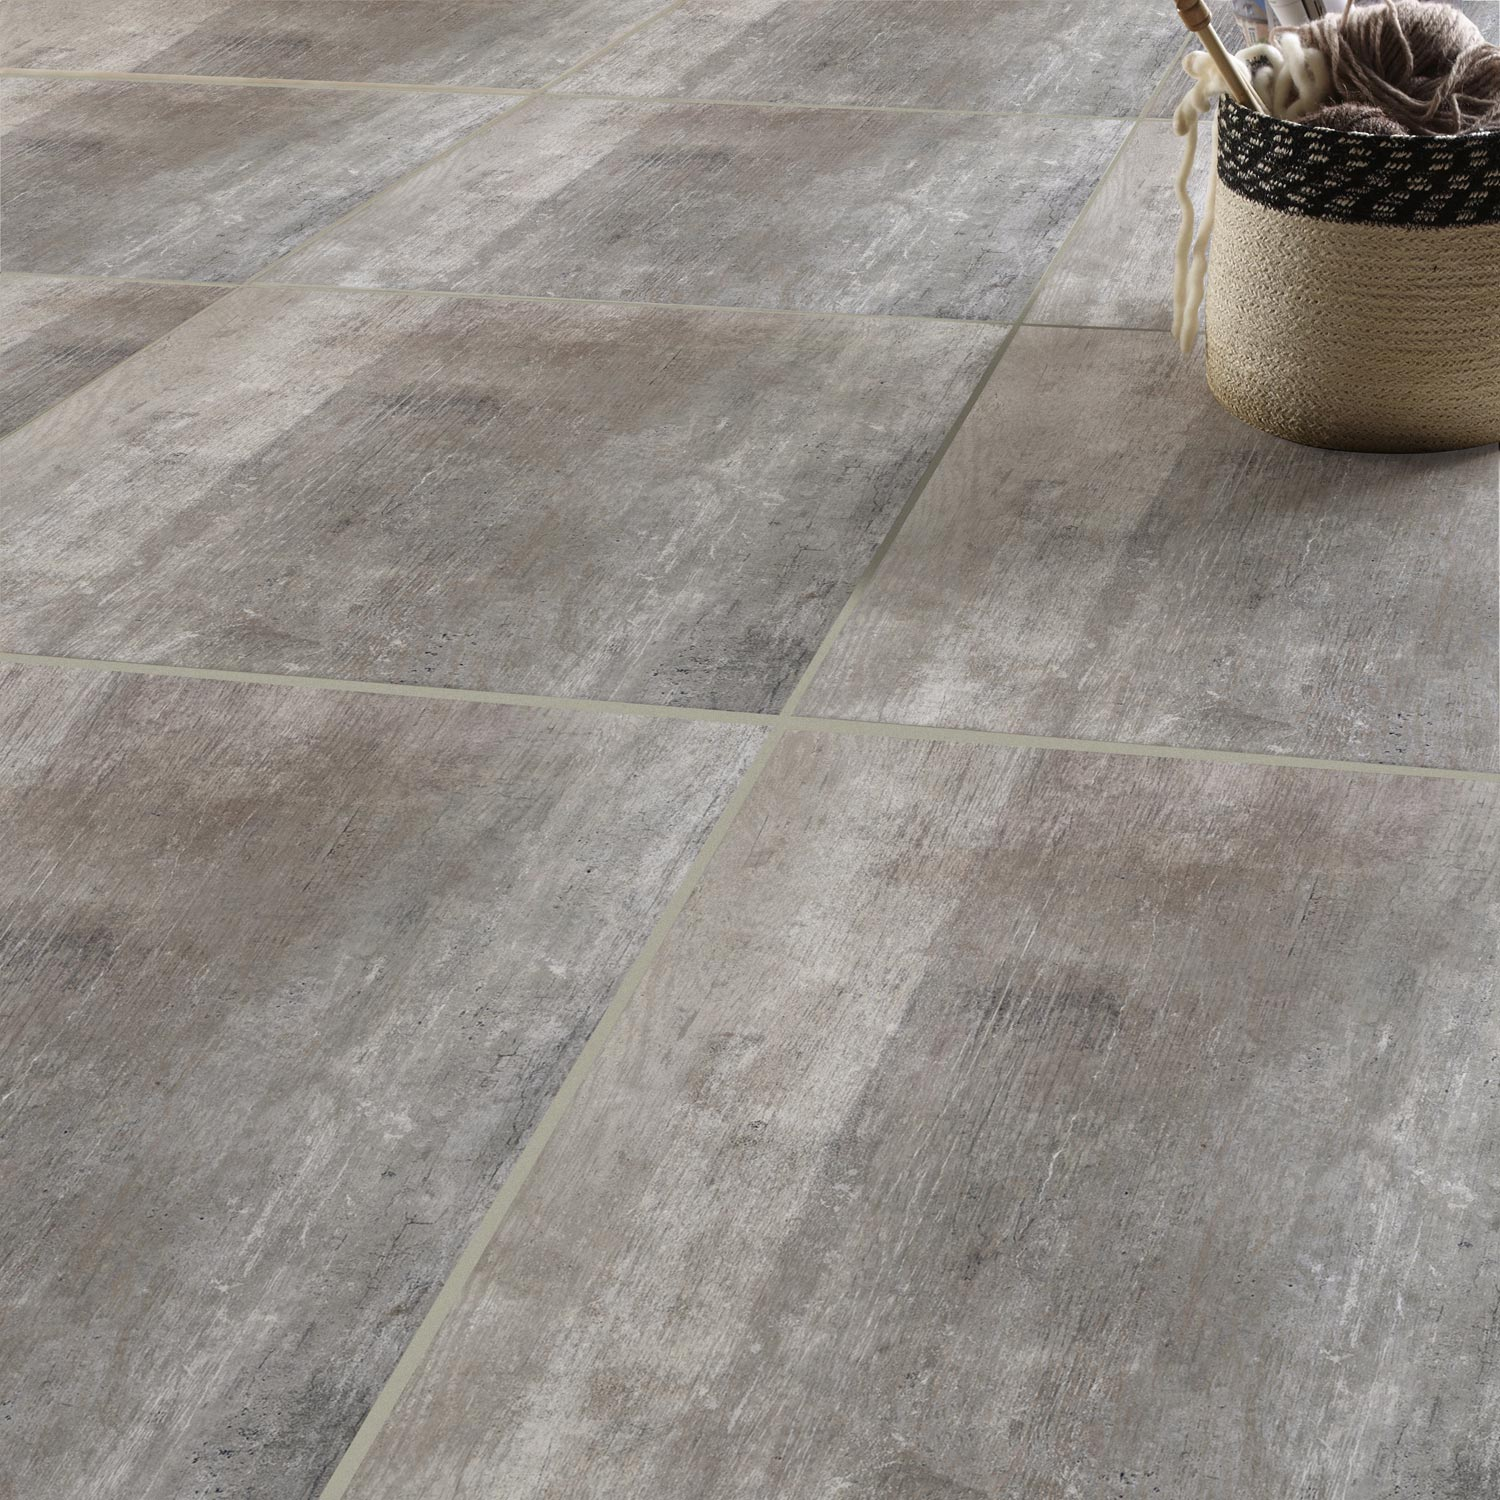 Carrelage gris 25x25 for Carrelage bleu gris